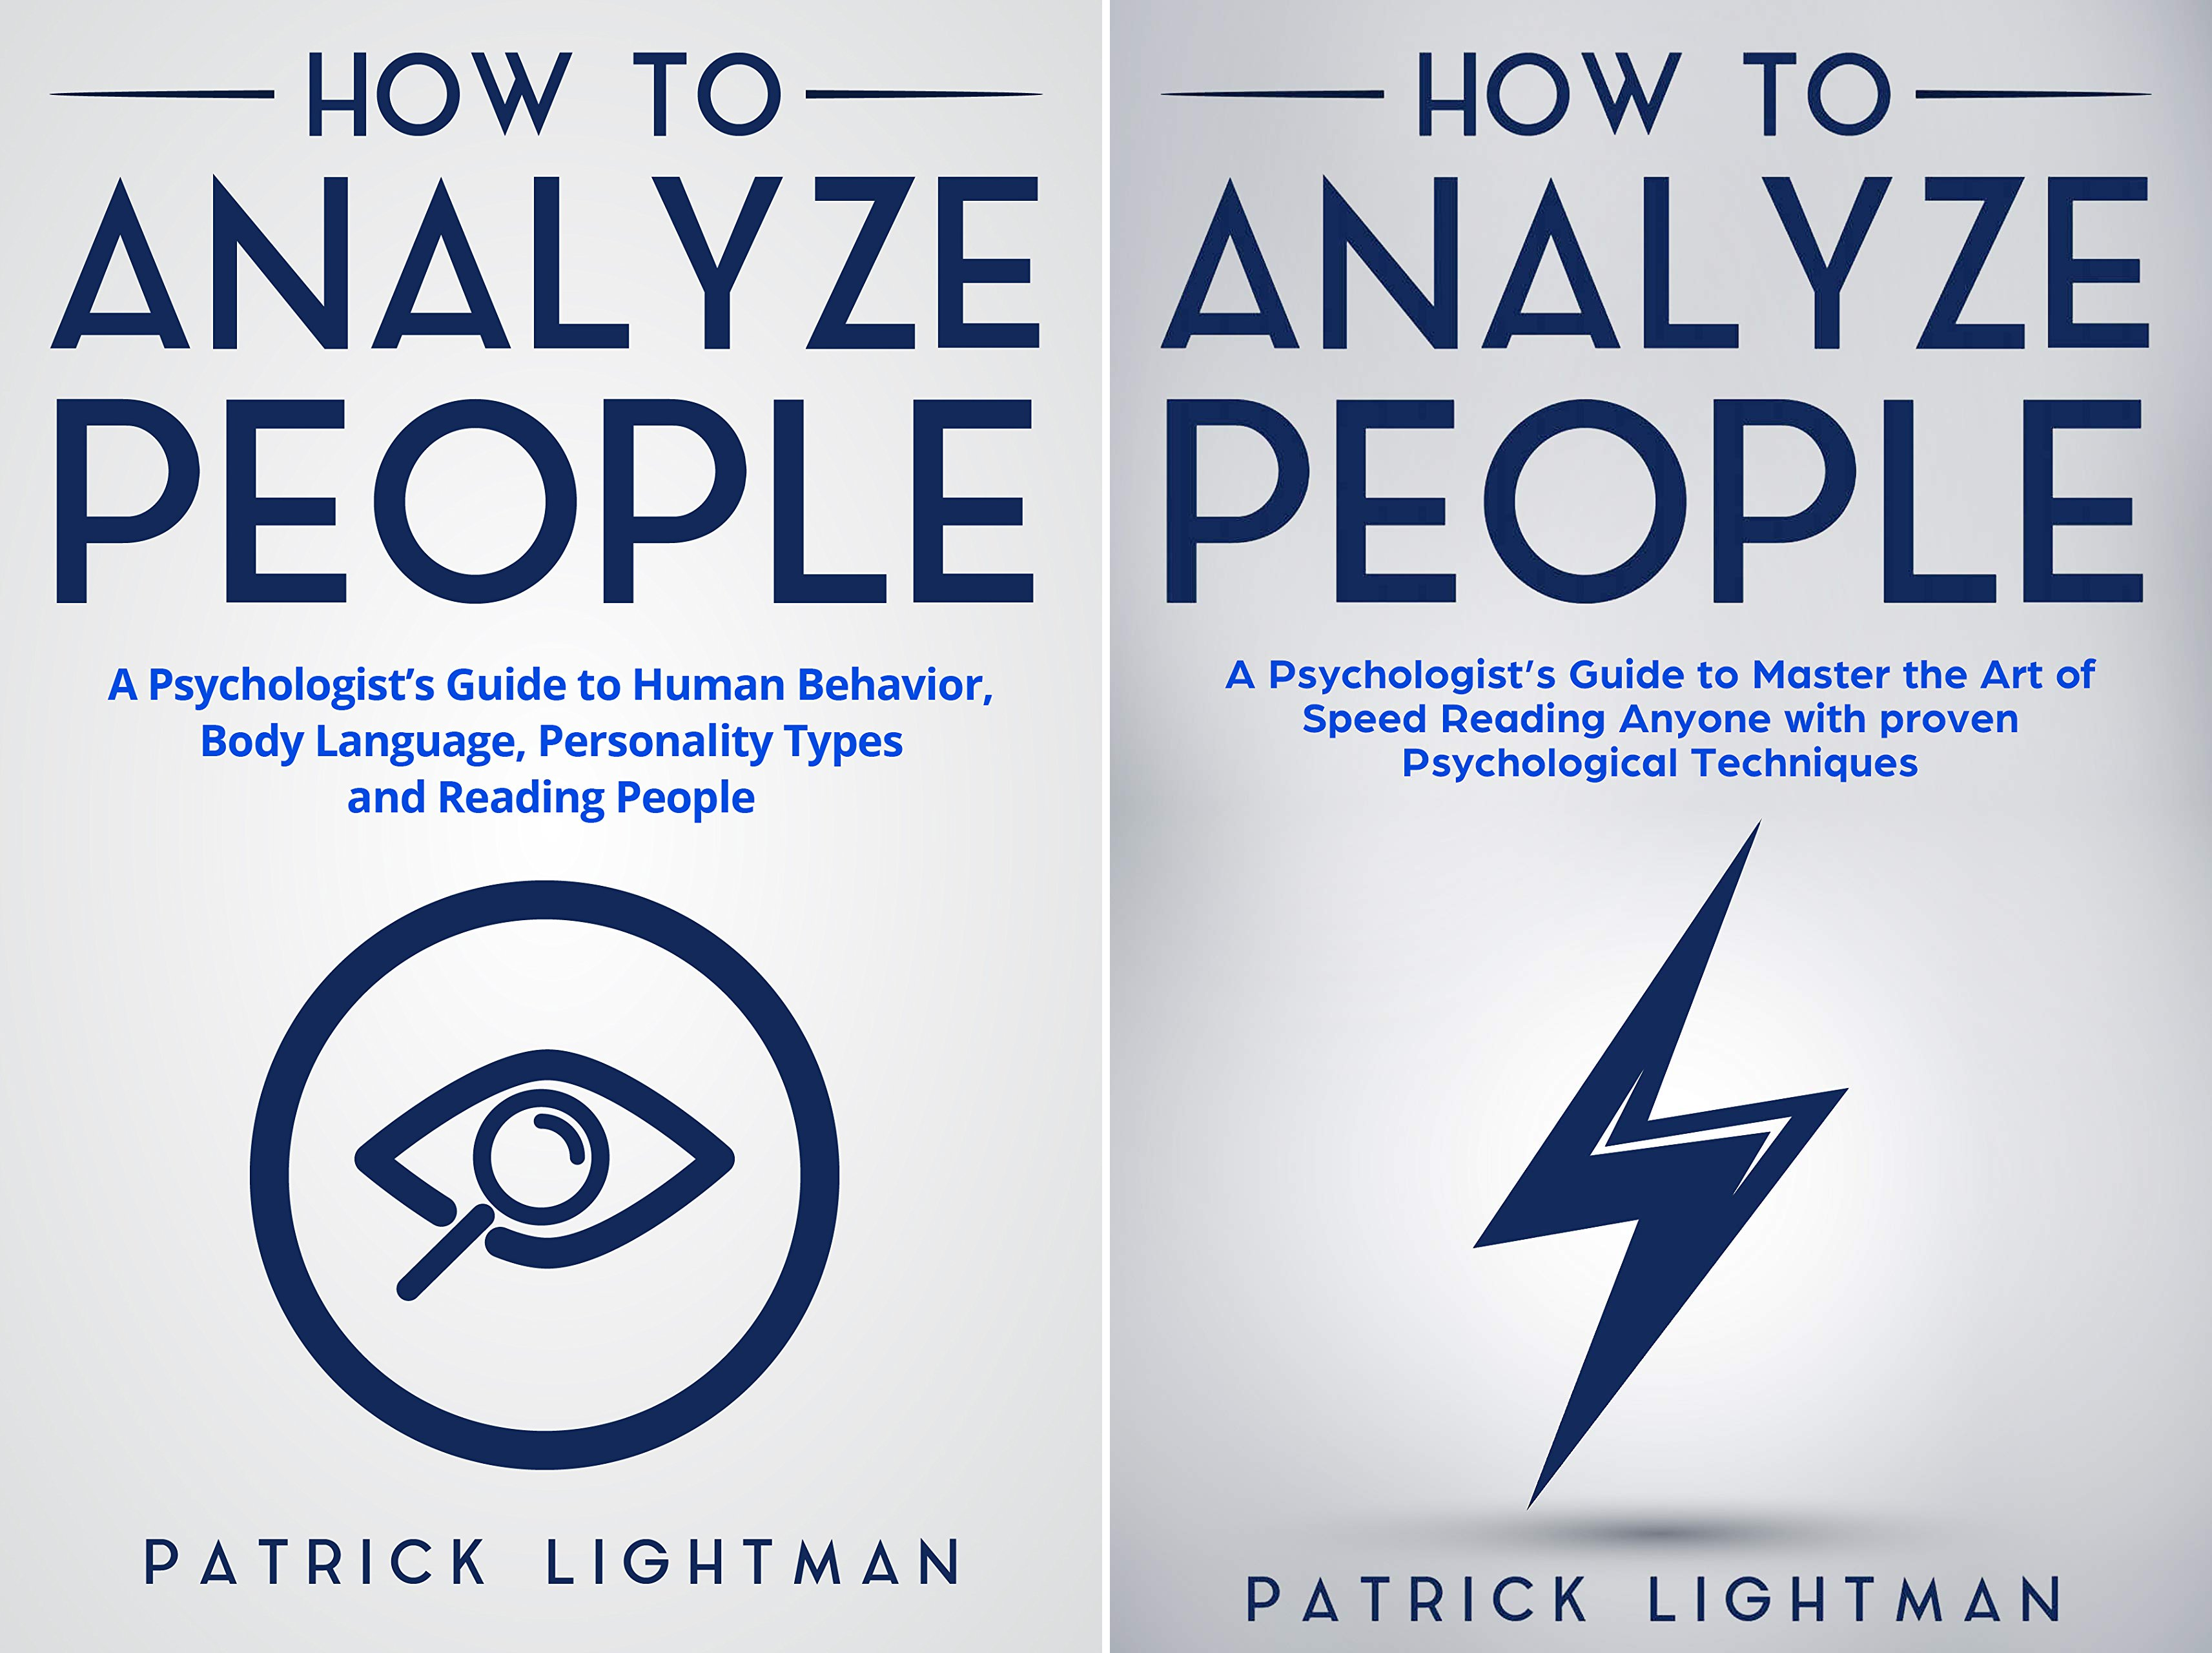 HOW TO ANALYZE PEOPLE (2 Book Series)